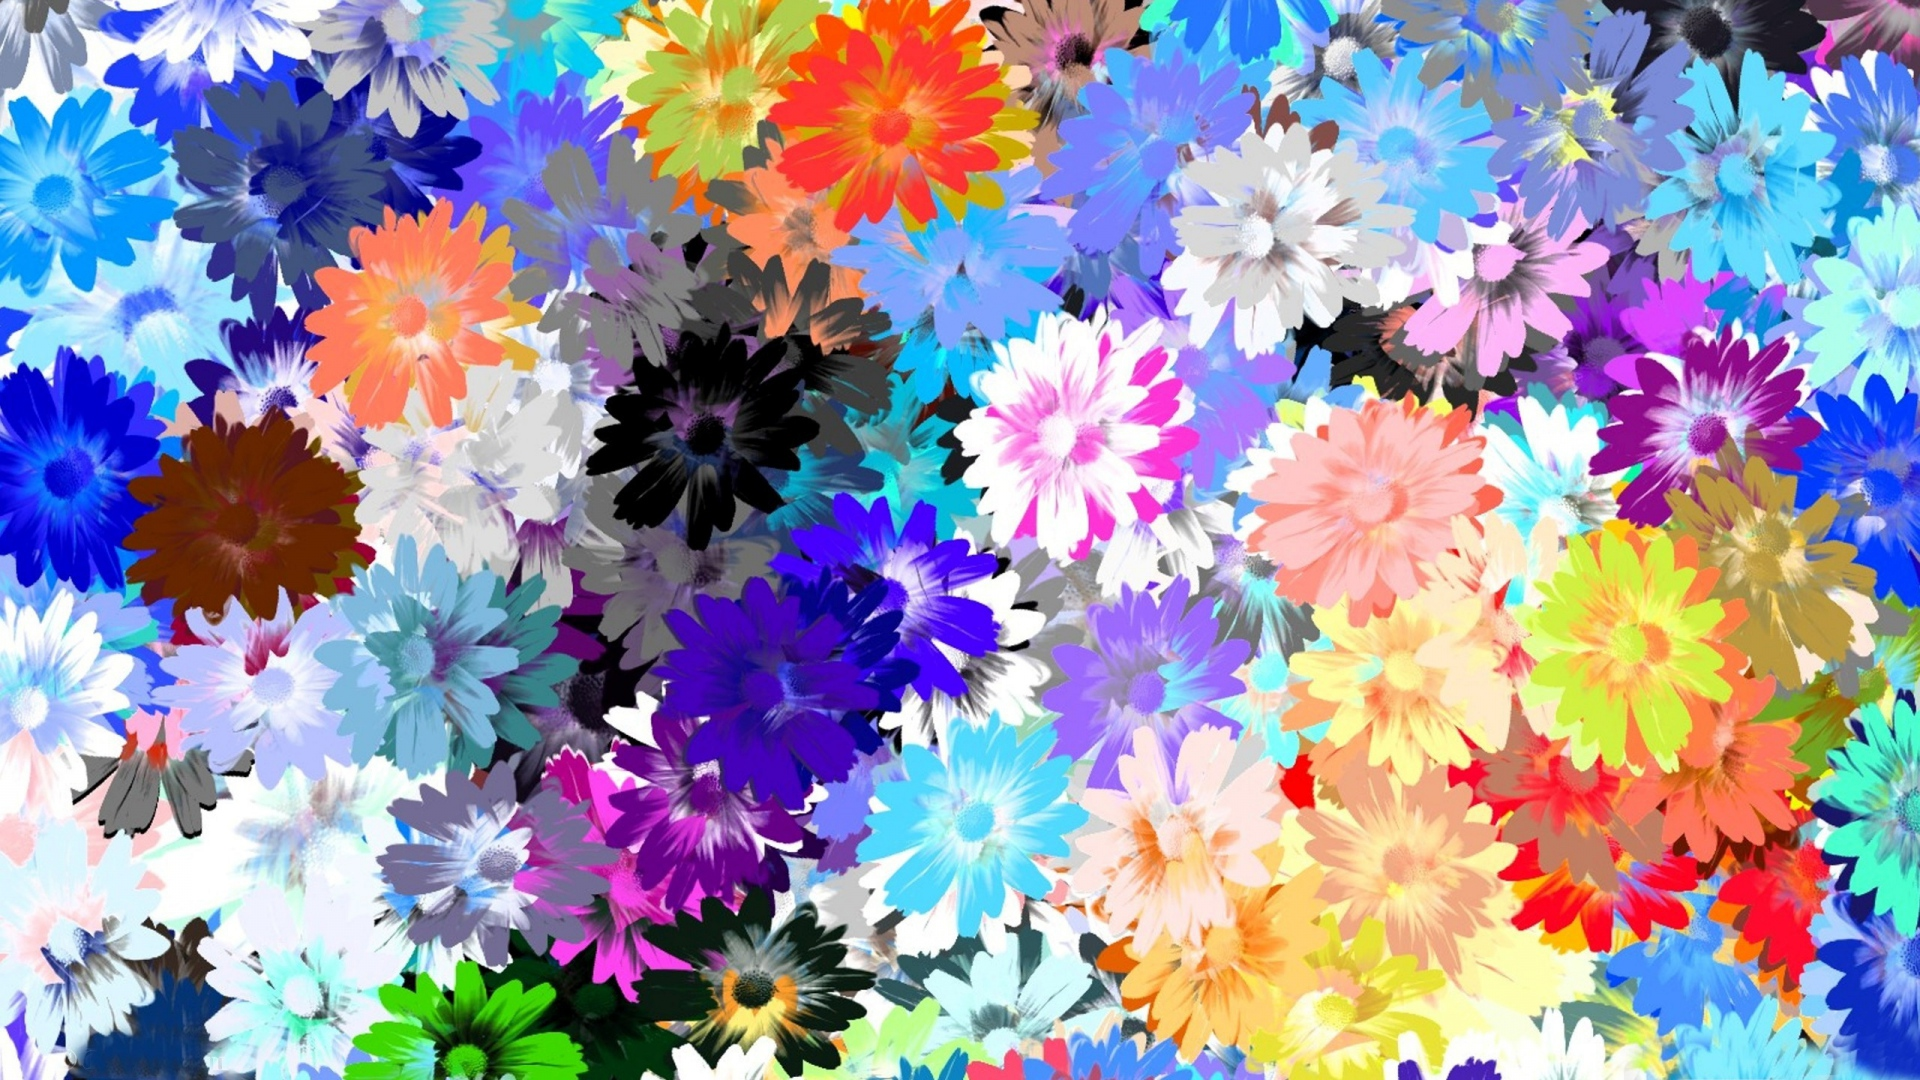 1920x1080 Download Wallpaper 1920x1080 Flowers, Colorful, Drawing, Oil Full